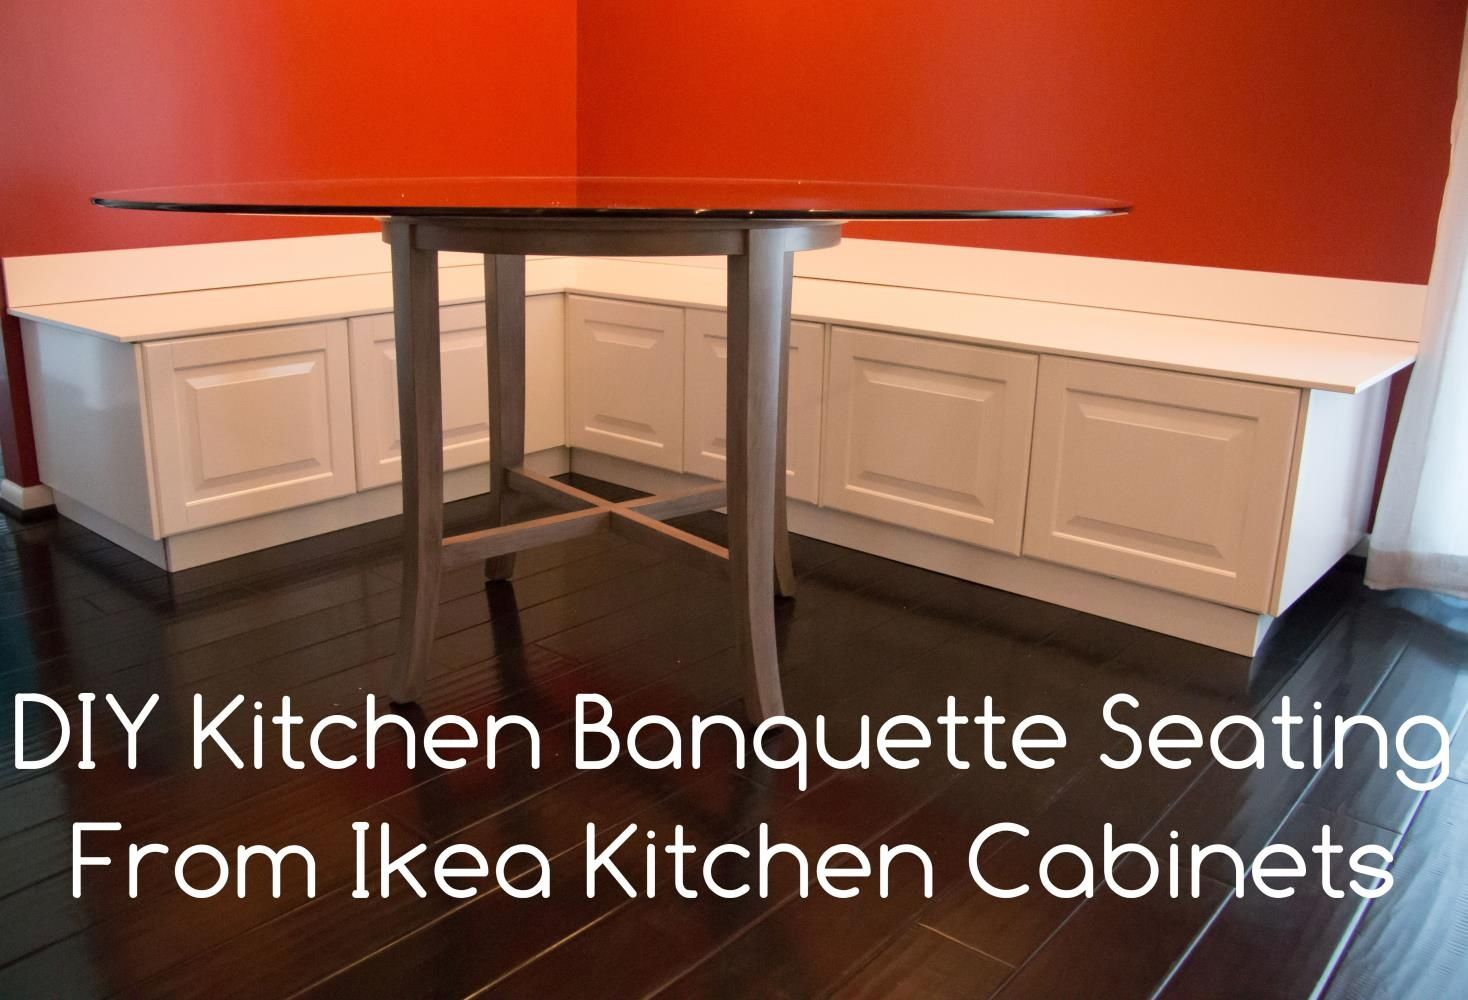 Diy kitchen seating banquette bench from ikea cabinets for Corner bench with storage ikea